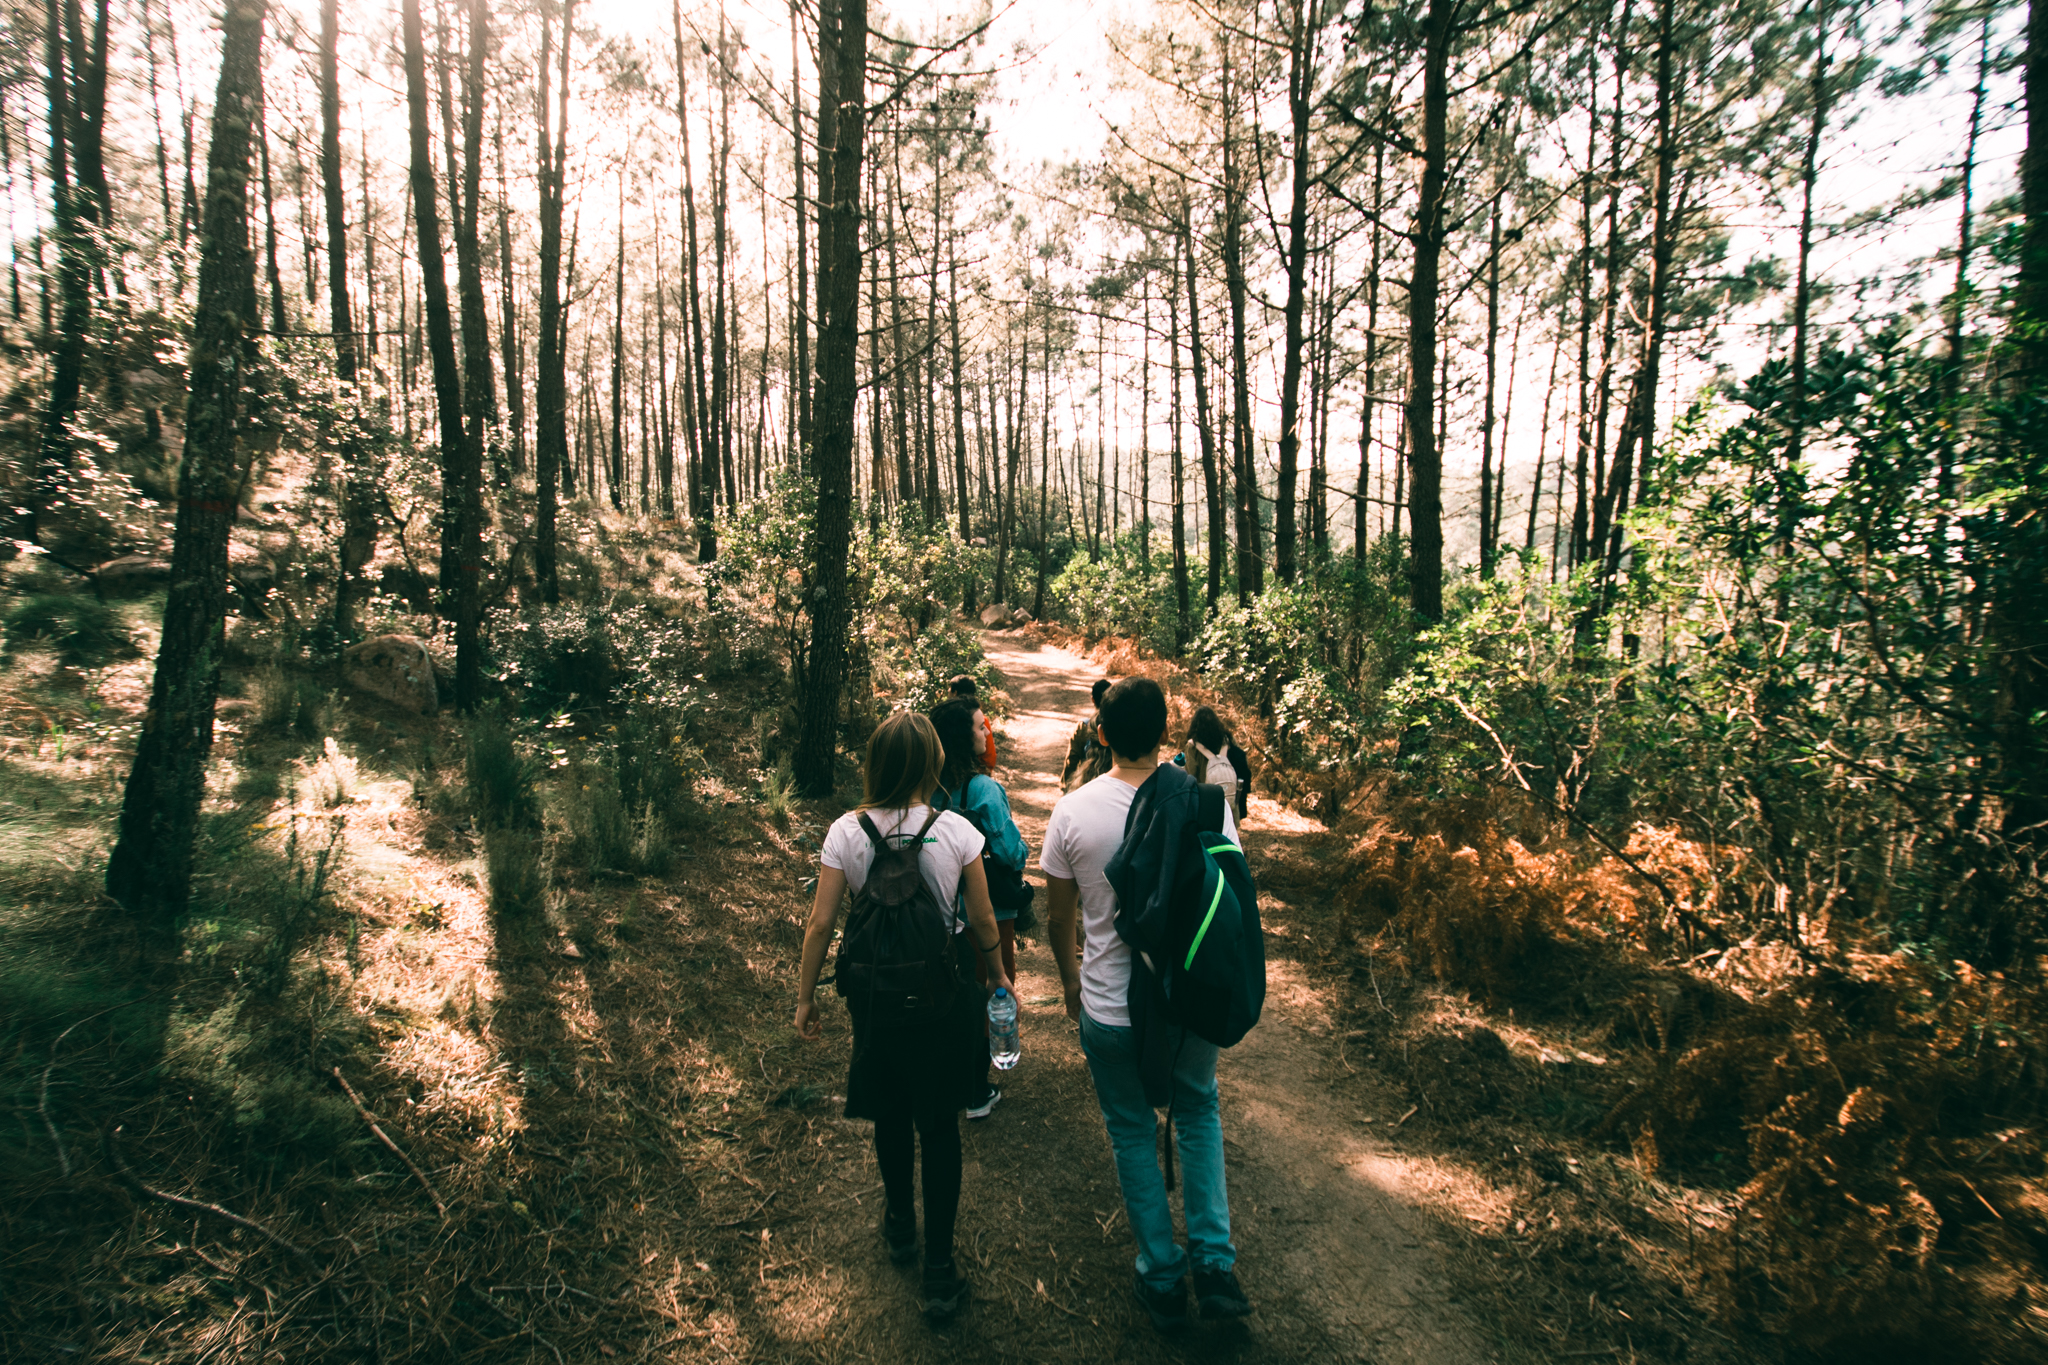 DISCOVER SINTRA: INTO THE WILD   Sintra Cascais Natural Park FROM 45,00€  If you're interested in exploring breathtaking landscapes, this is the perfect challenge for you. Come and cross our stunning wild paths through hills and valleys that will certainly leave you inspired.